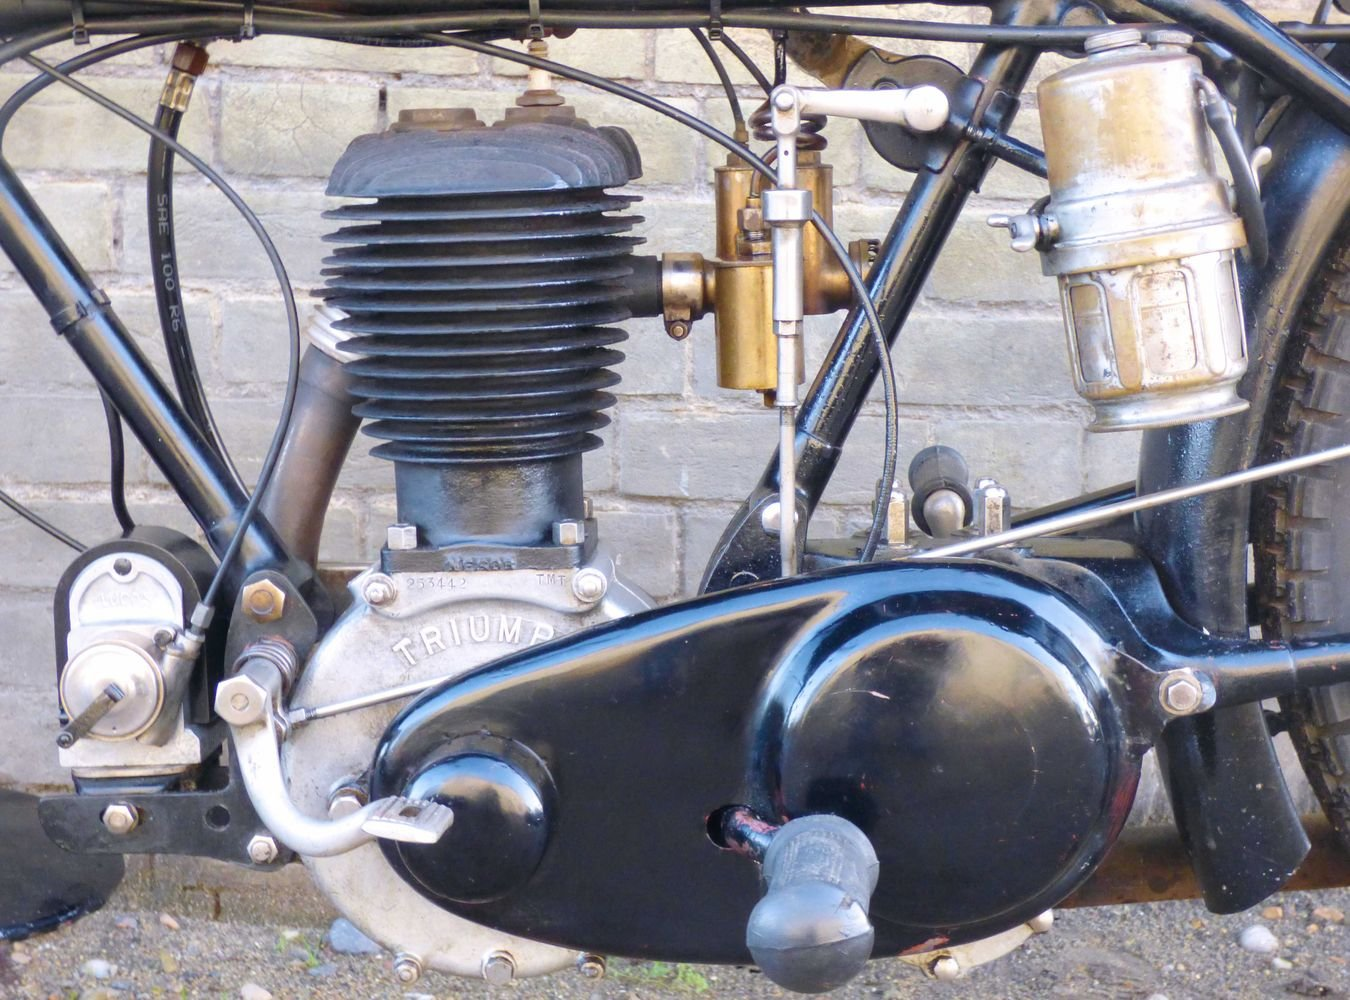 1928 Triumph Model N 500cc For Sale (picture 4 of 6)